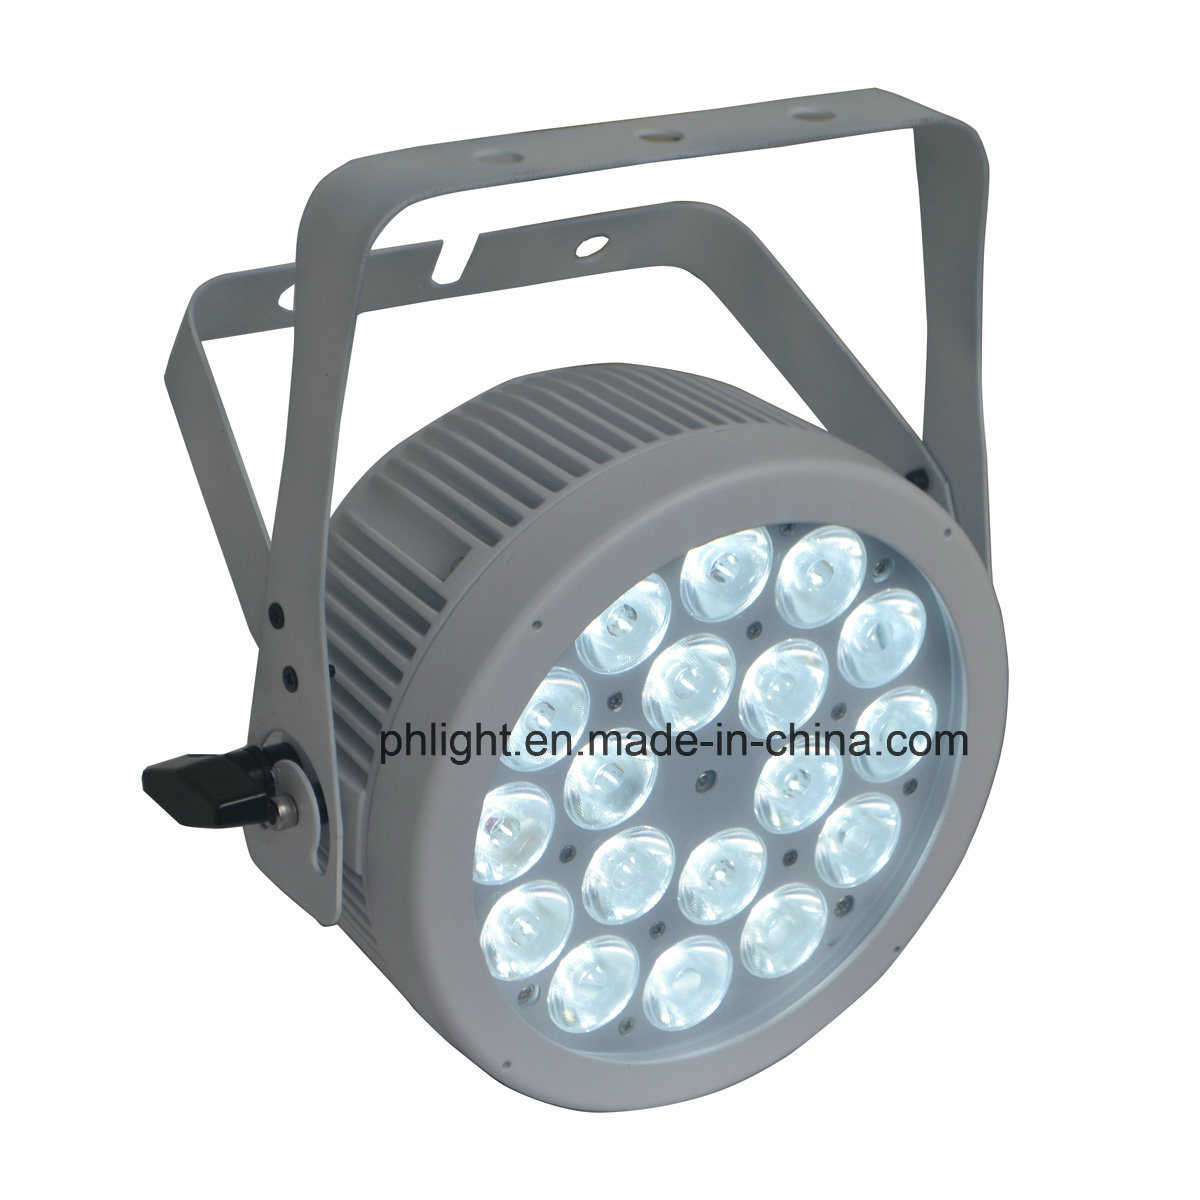 18X5w Warm White Cool White 2-in-1 LED PAR Light with White Housing for Stage, Studio, Camera